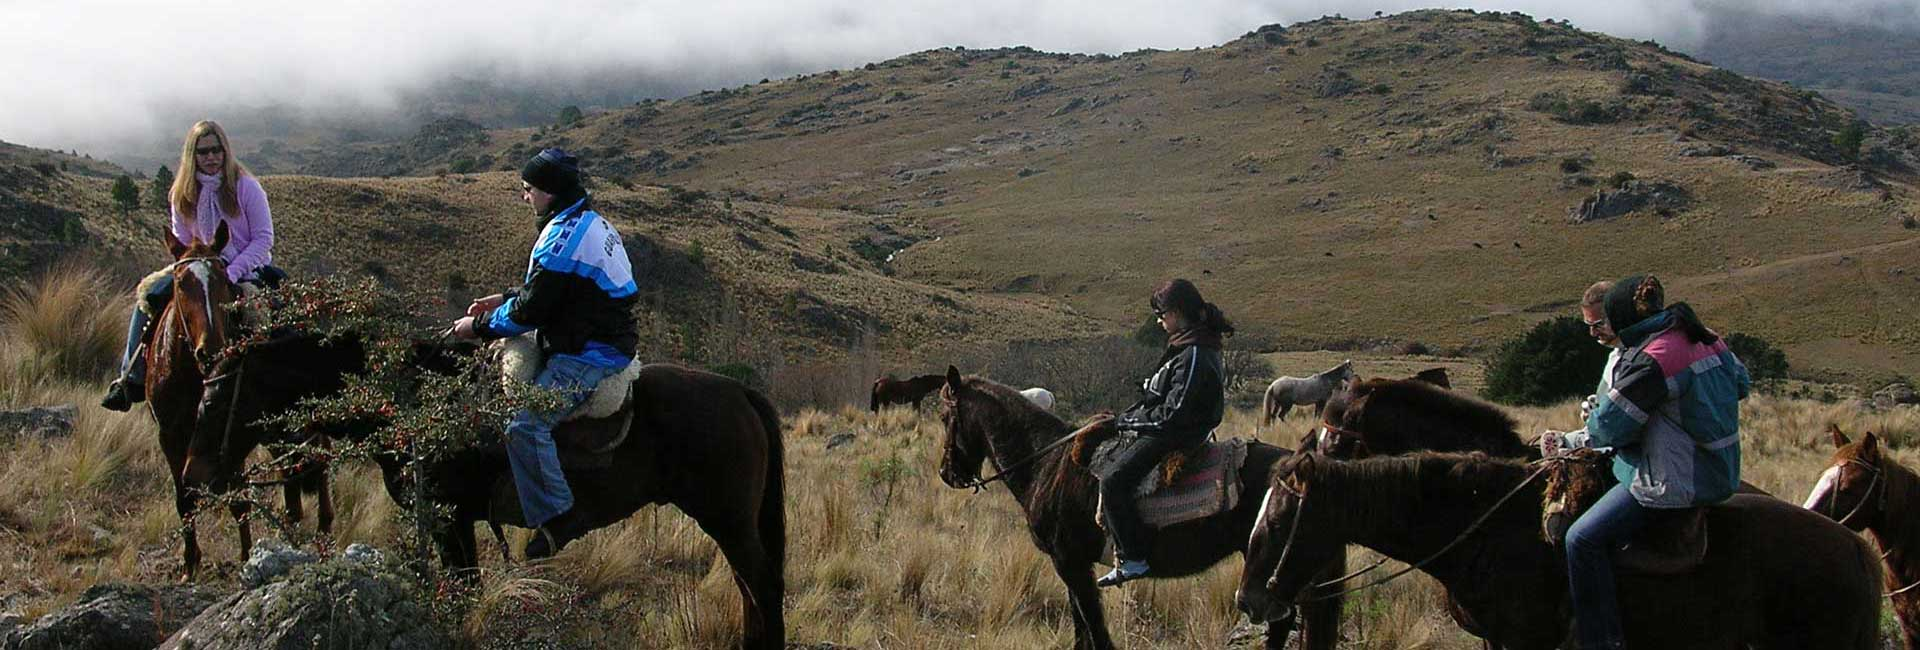 Horse riding action in Argentina